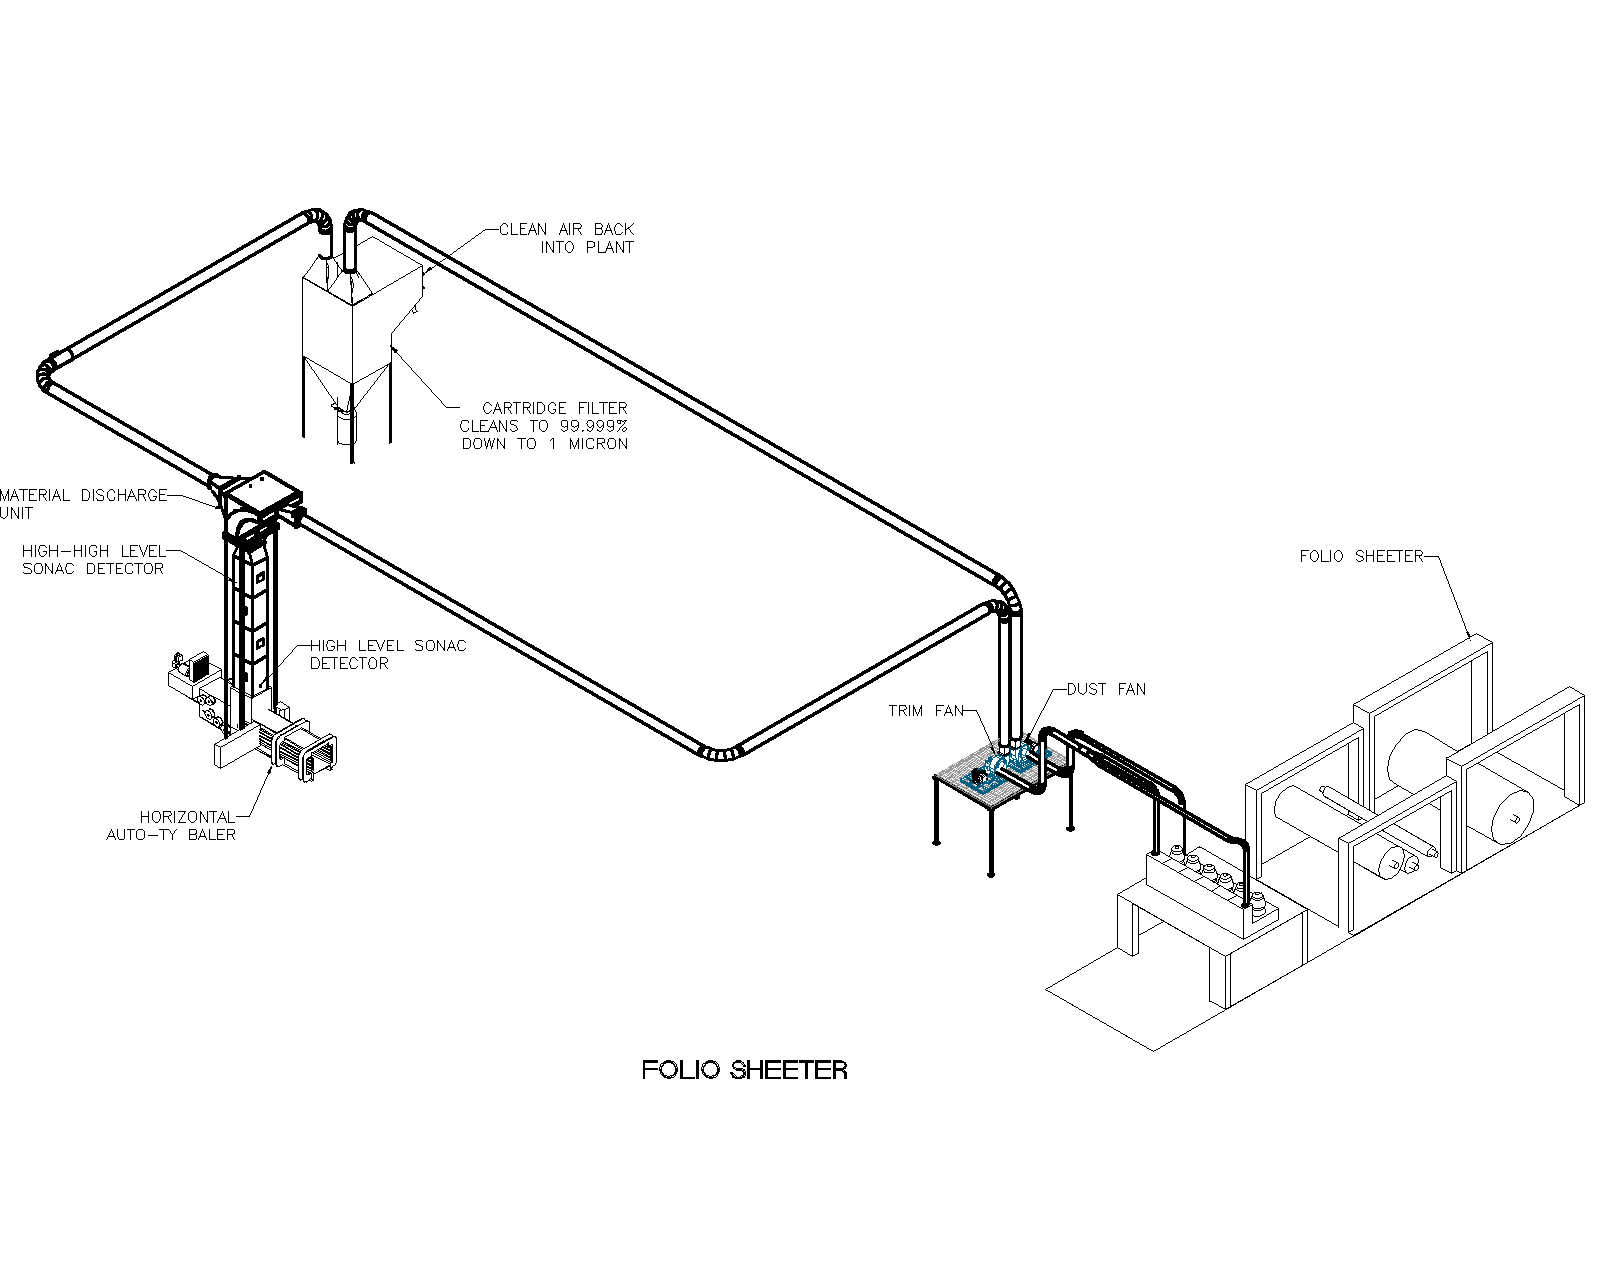 Folio Sheeter Trim System Pneumatic Conveying Systems Air Systems Design